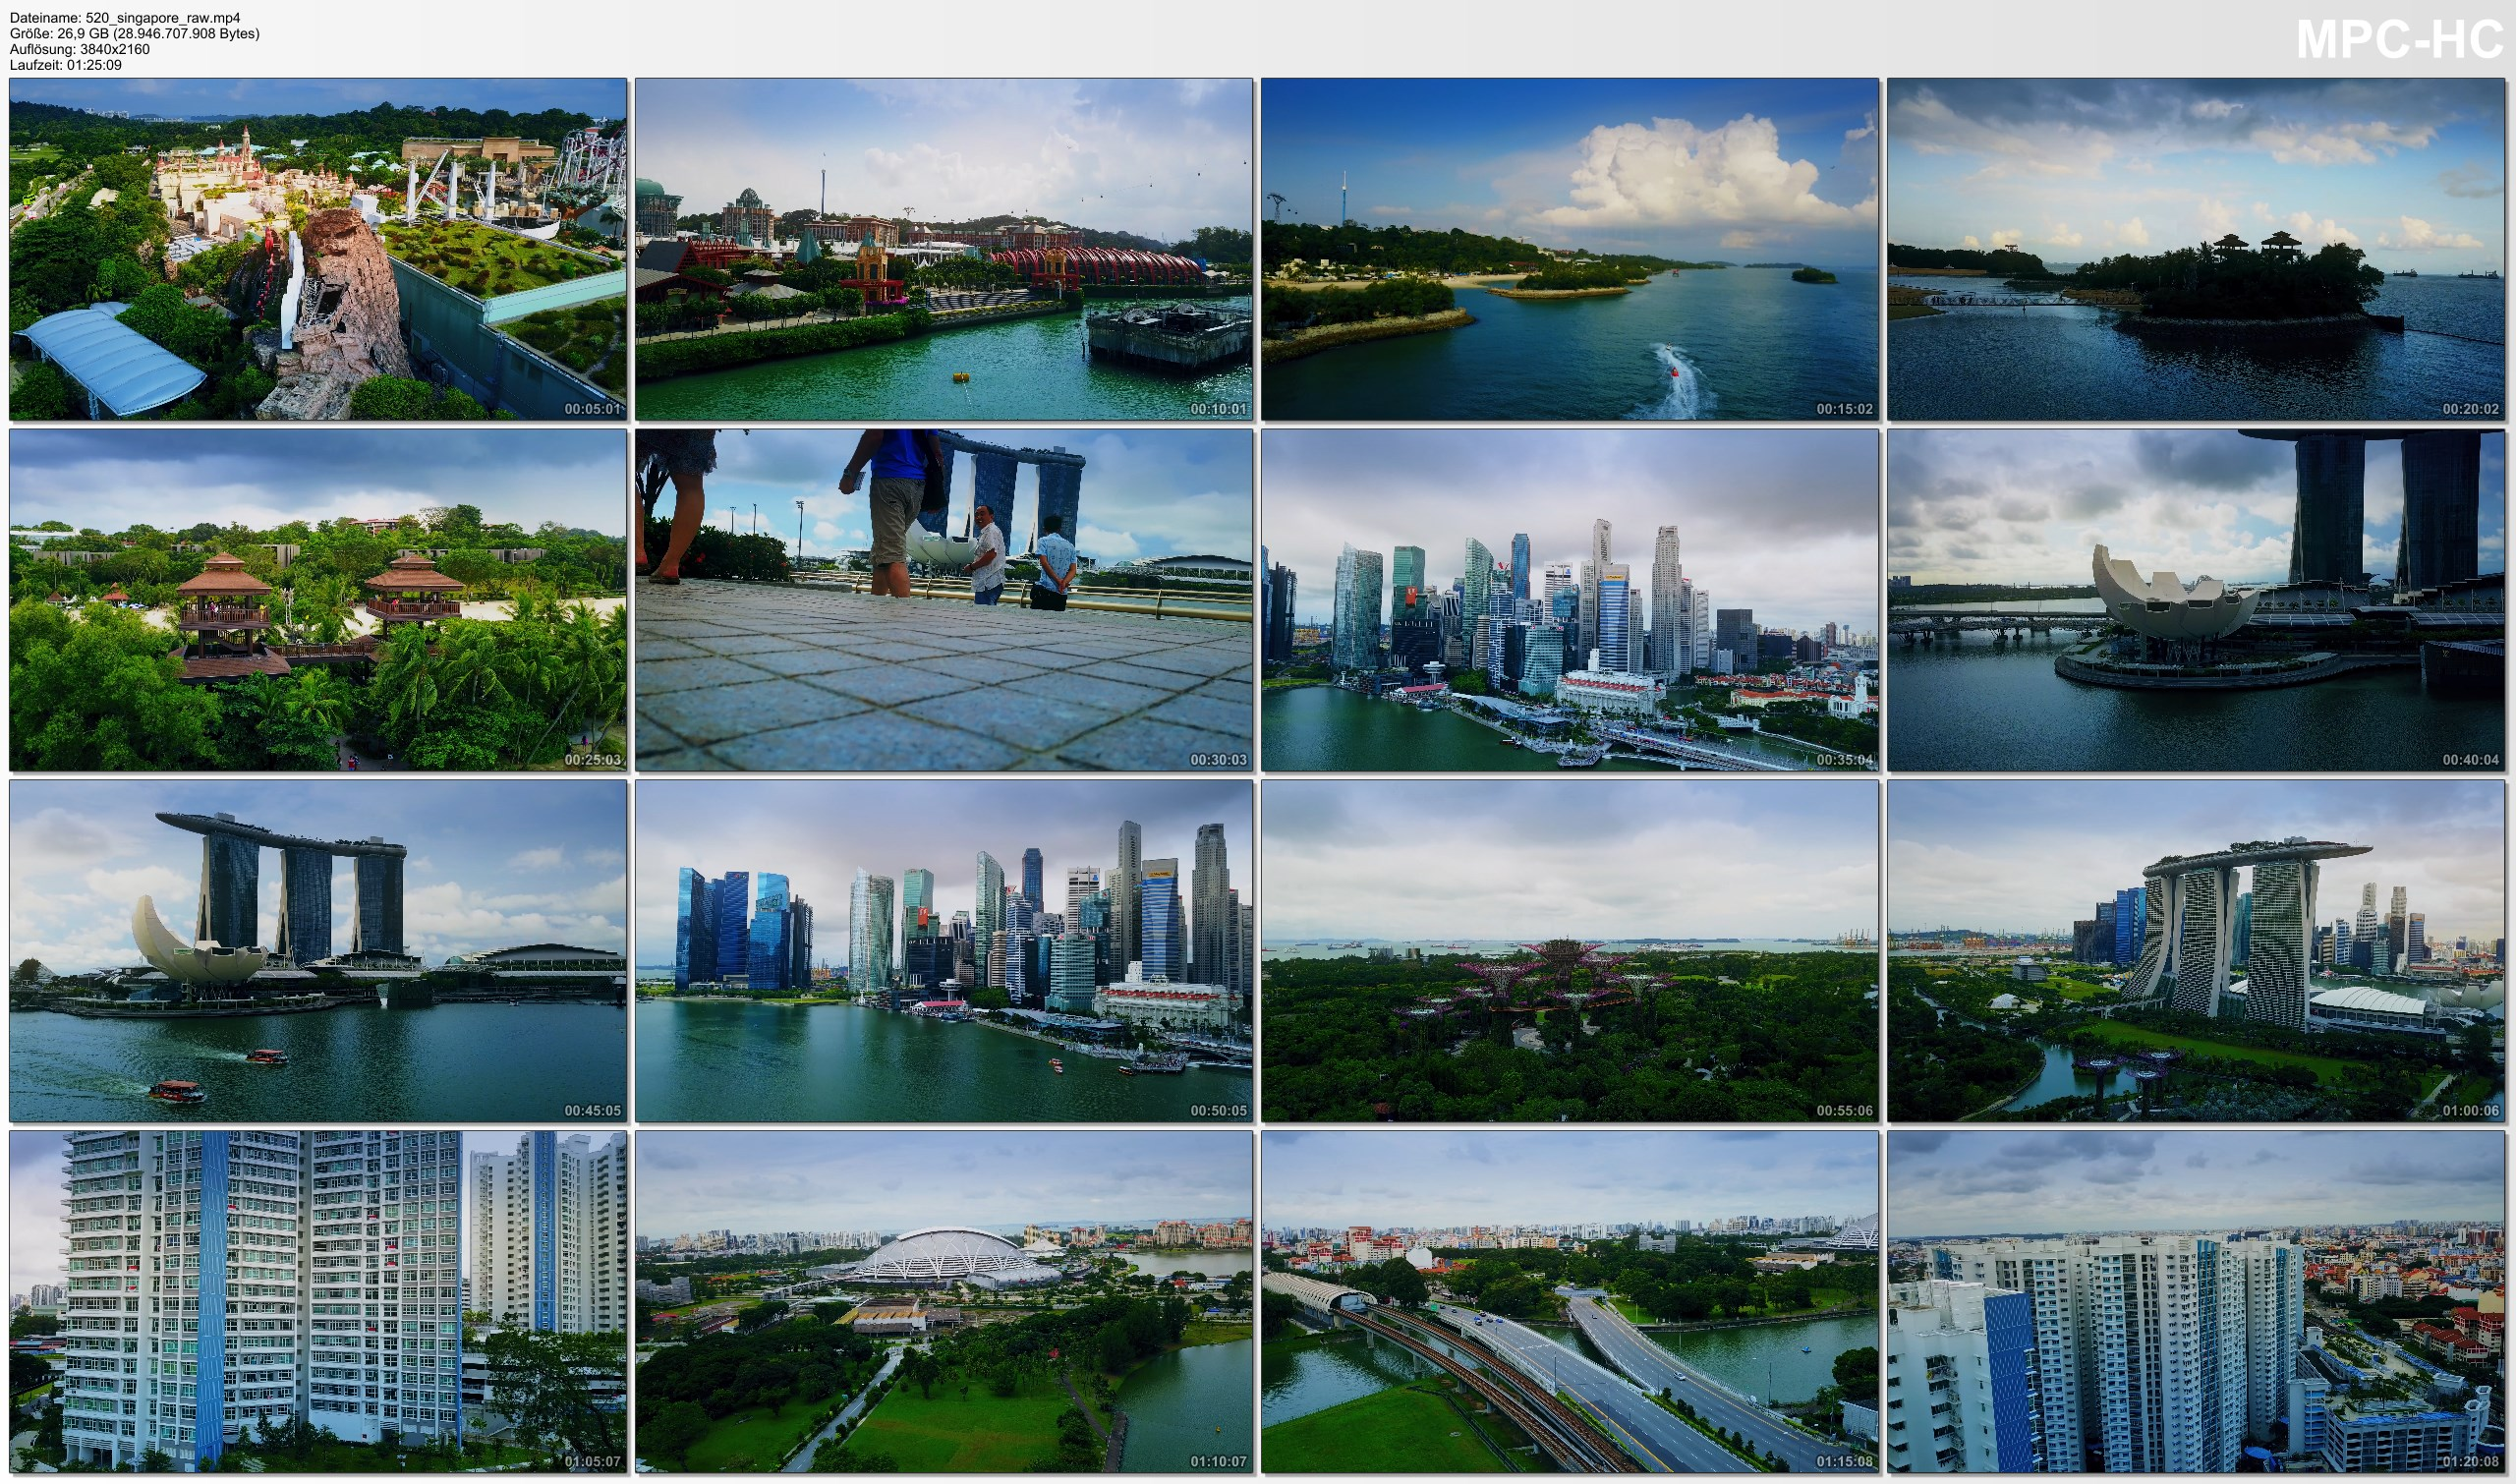 Drone Pictures from Video 【4K】Drone RAW Footage | This is SINGAPORE 2020 | The Lion City | UltraHD Stock Video